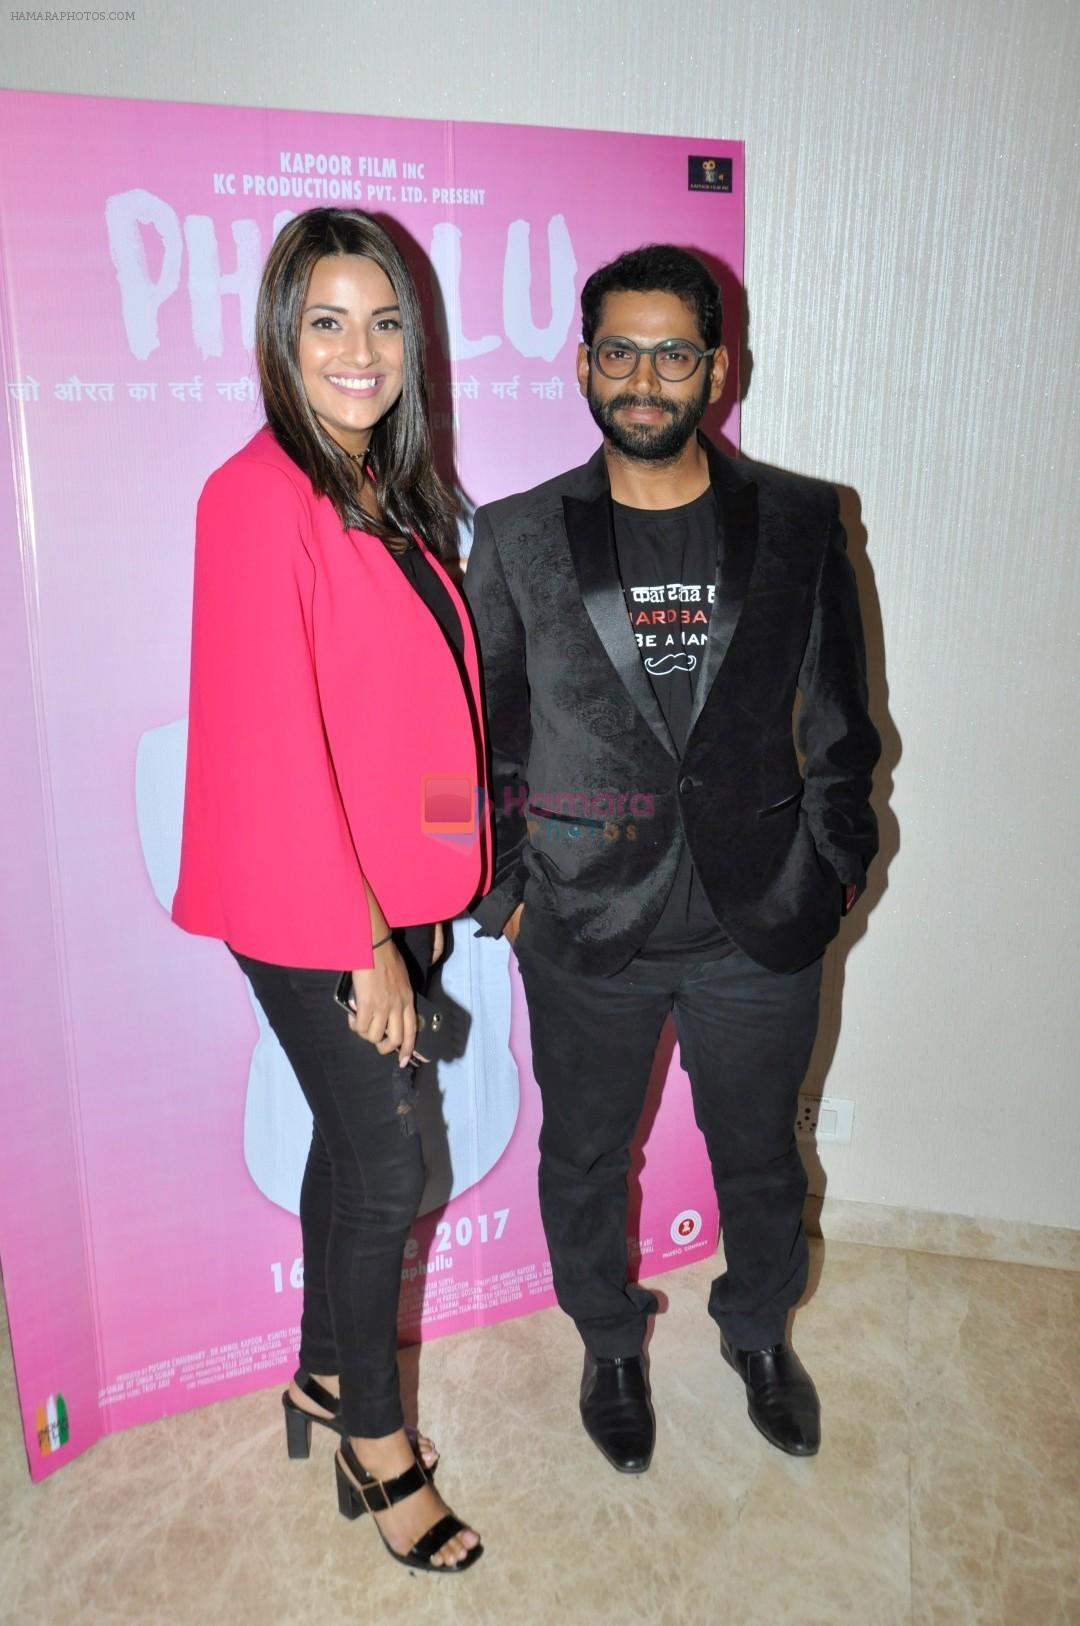 Jyotii Sethi and Sharib Hashmi at The Special Screening Of Phullu on 14th June 2017